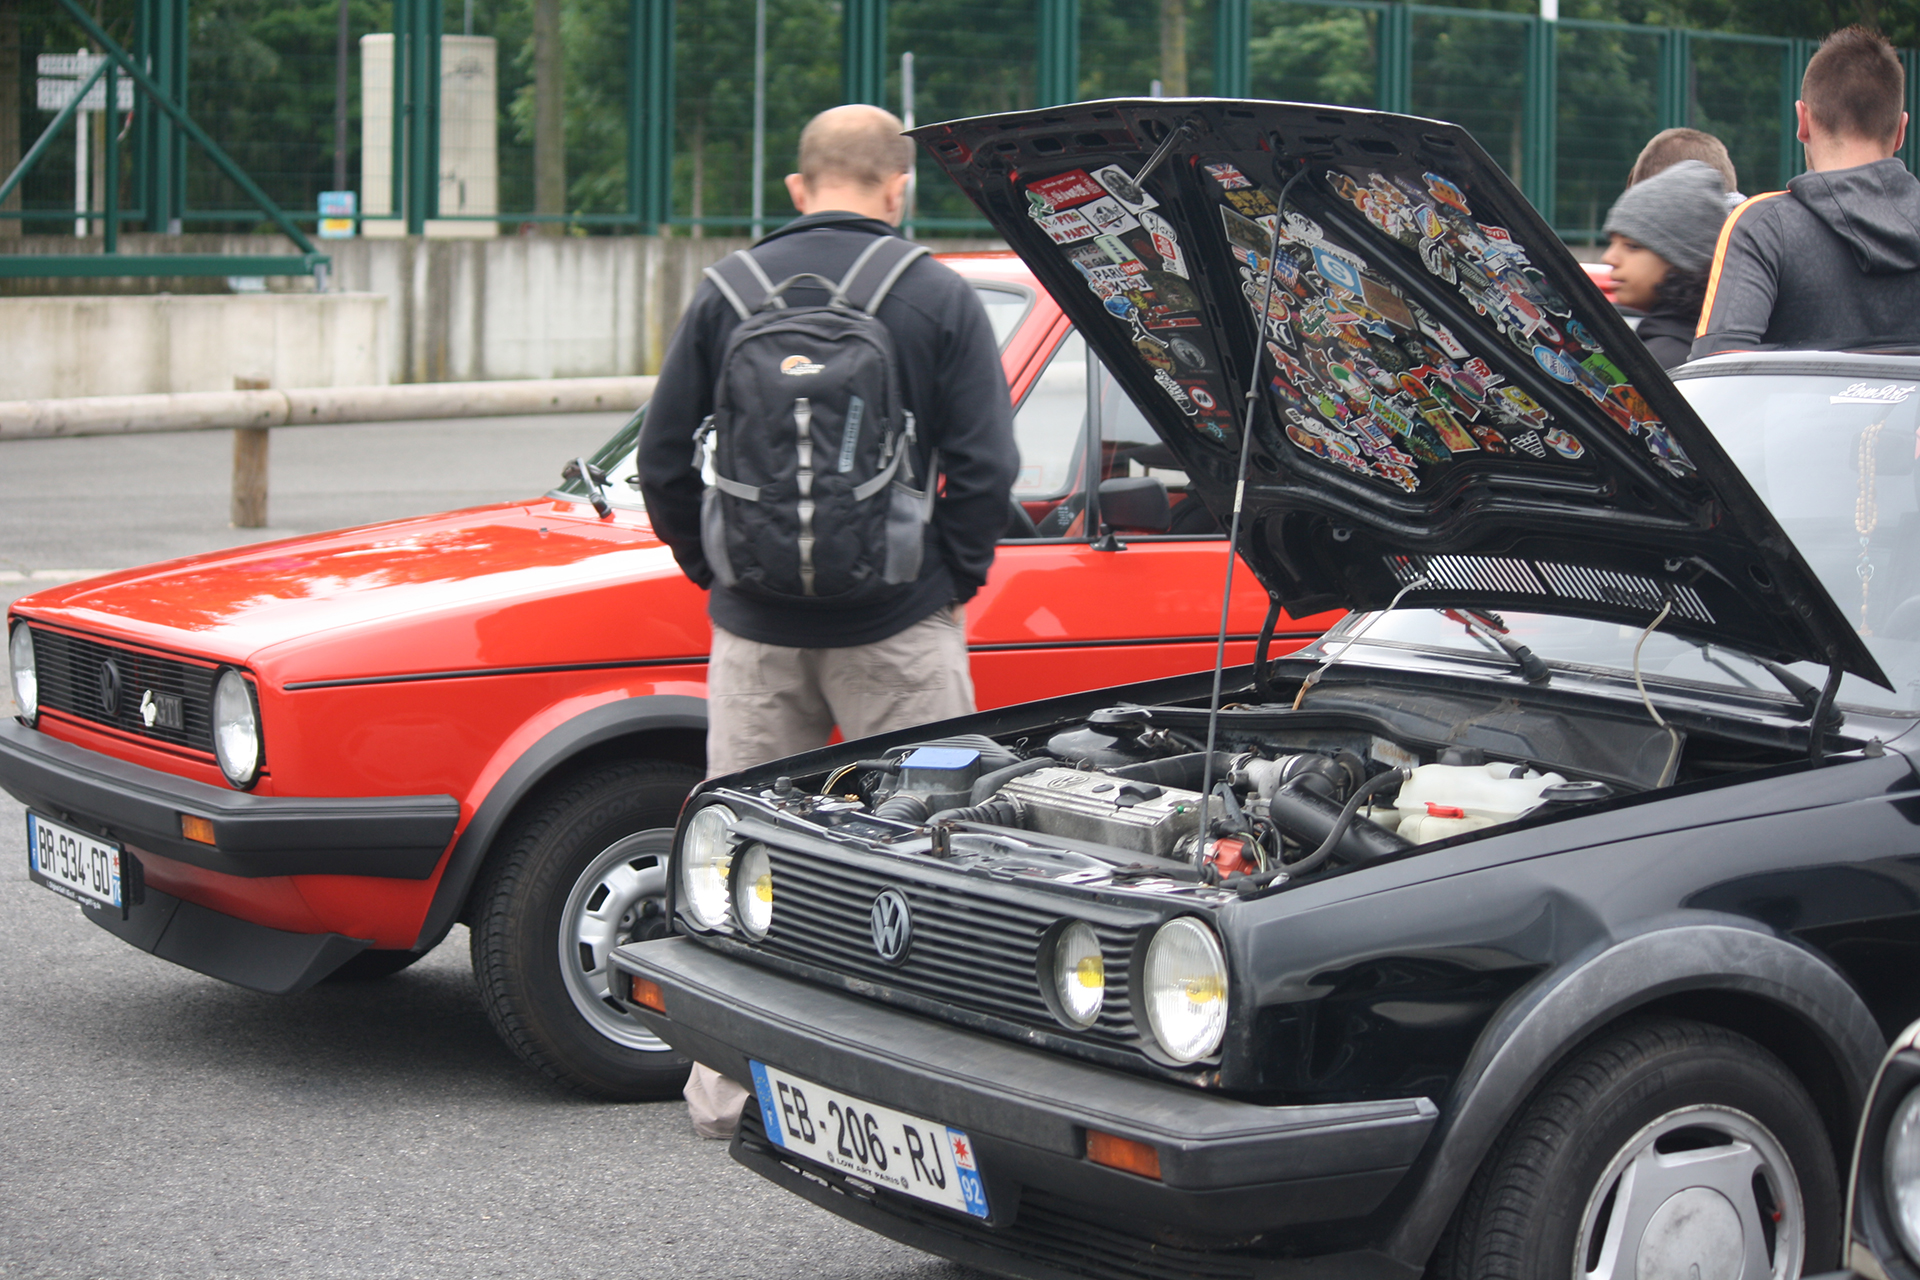 Golf Mk1 - under the hood - Youngtimers Meeting - 2016 - photo Fiona Rodrigues